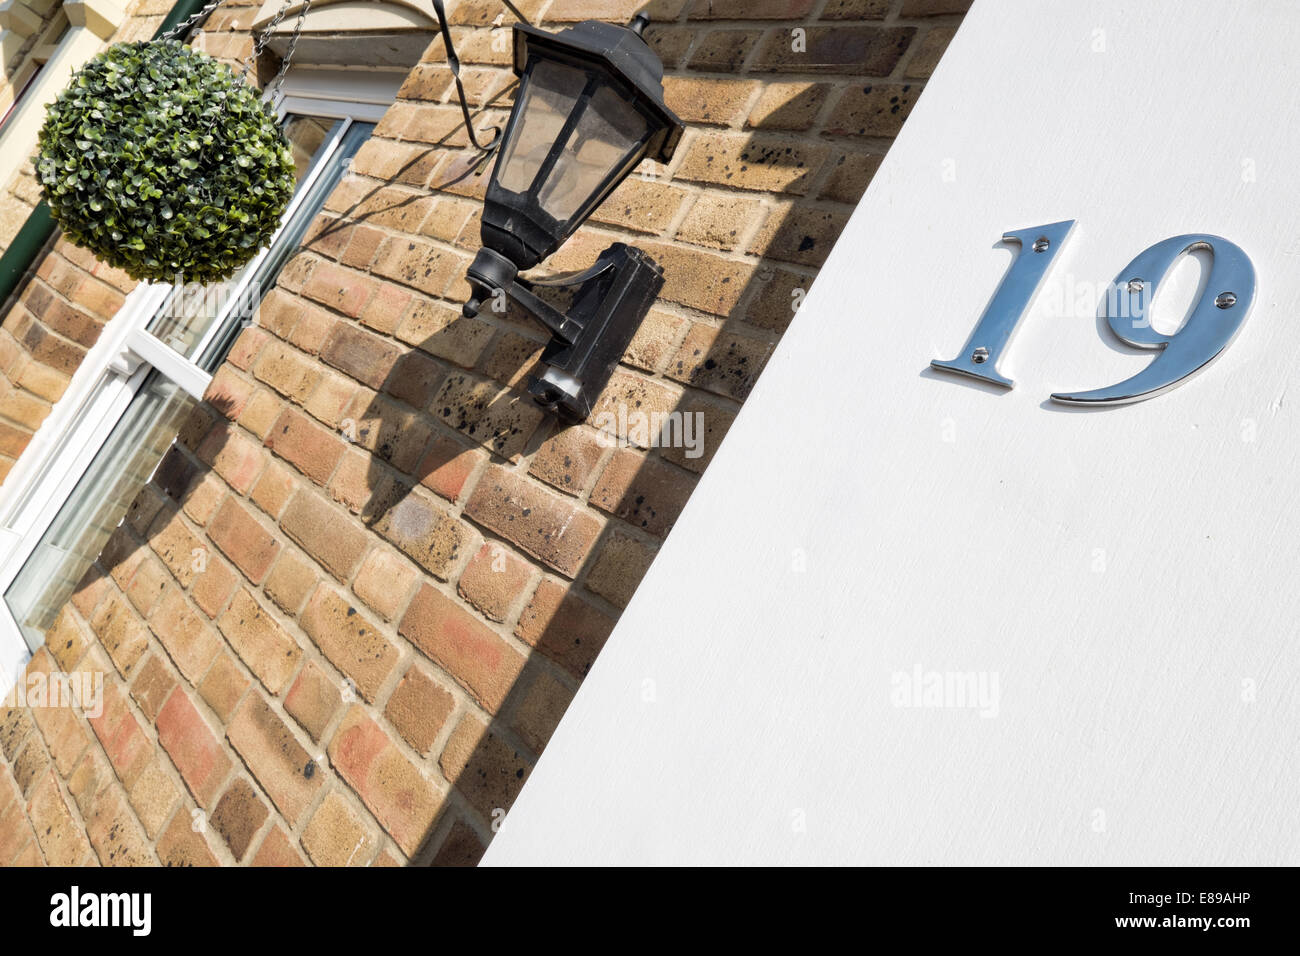 A chrome number 19 on a white stucco wall, used to identify the home's address - Stock Image